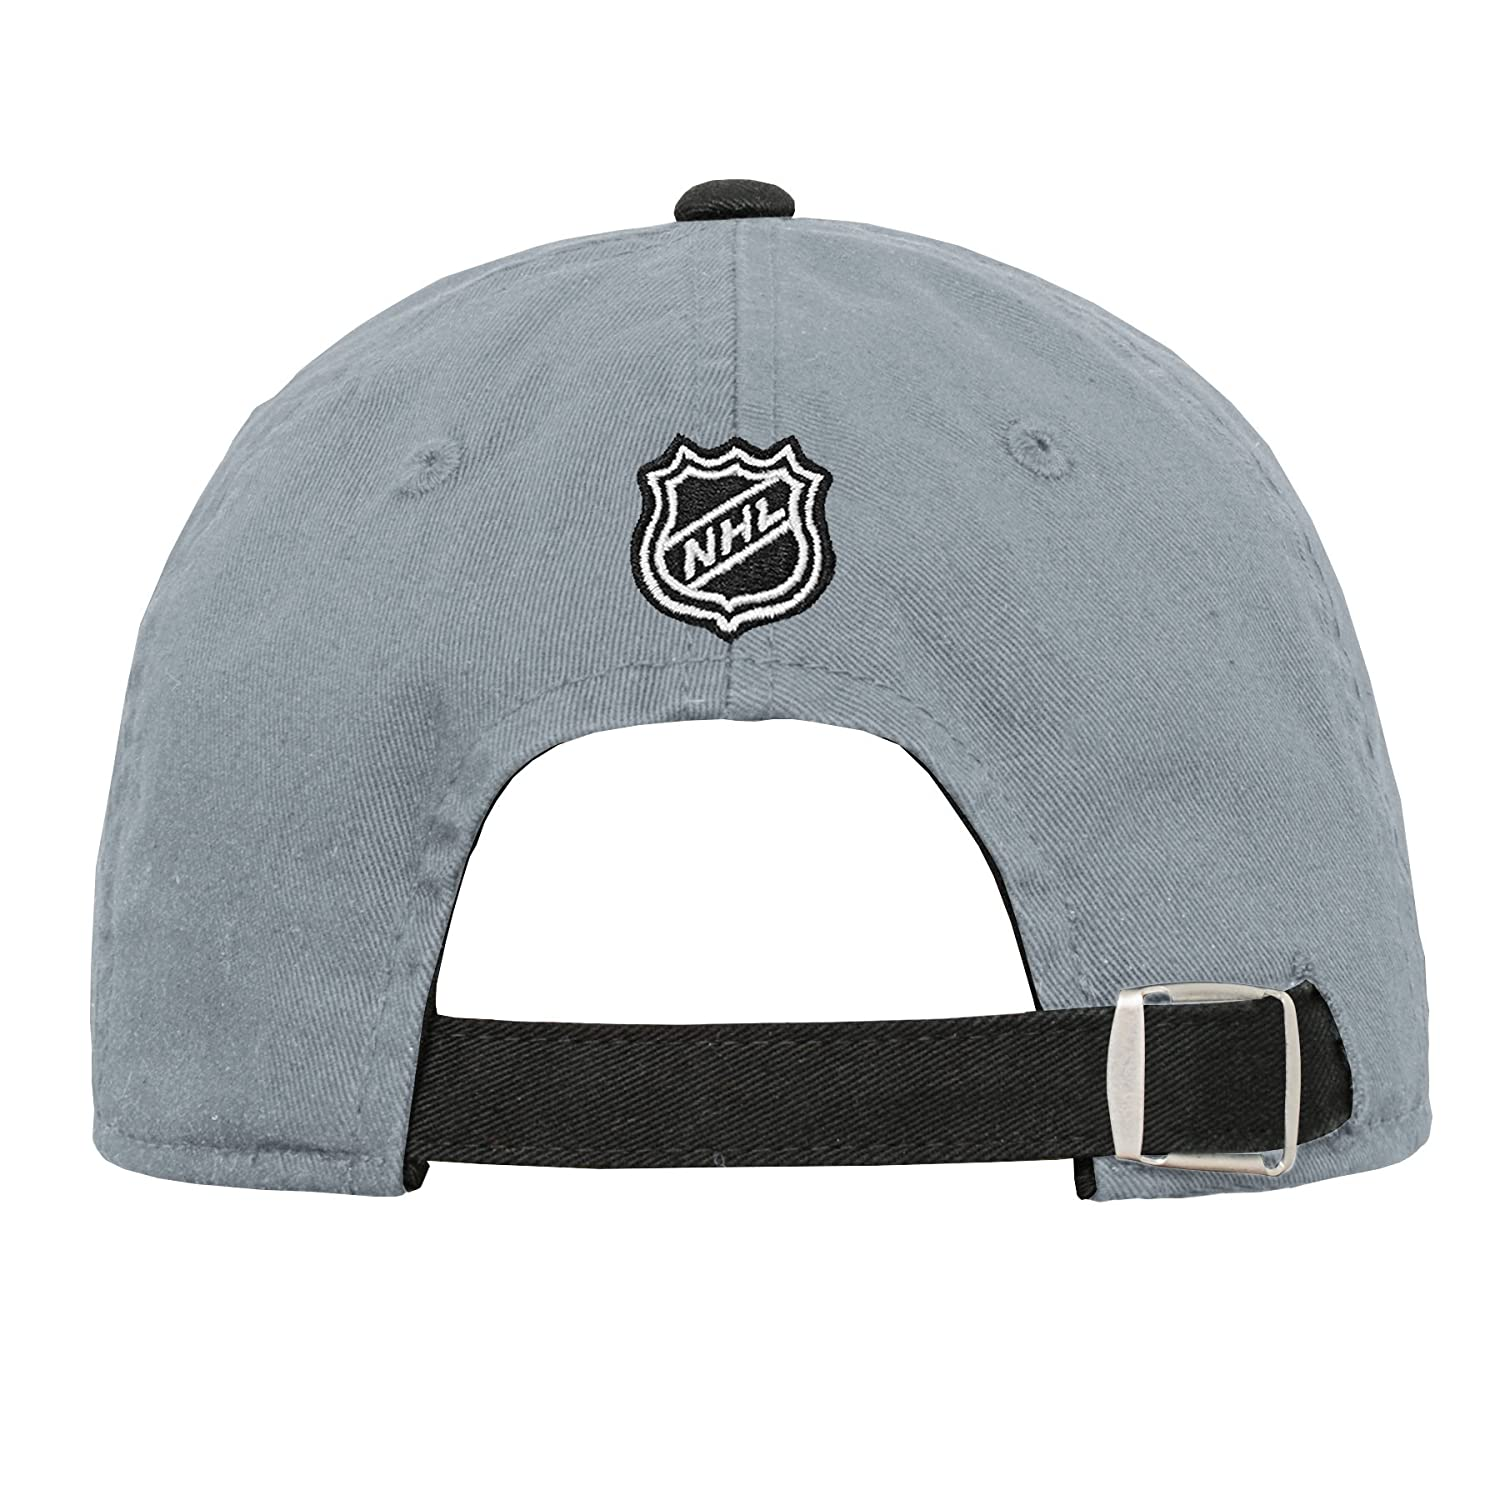 Youth One Size NHL by Outerstuff NHL Los Angeles Kings Youth Girls Retro Colorblock Structured Hat Black